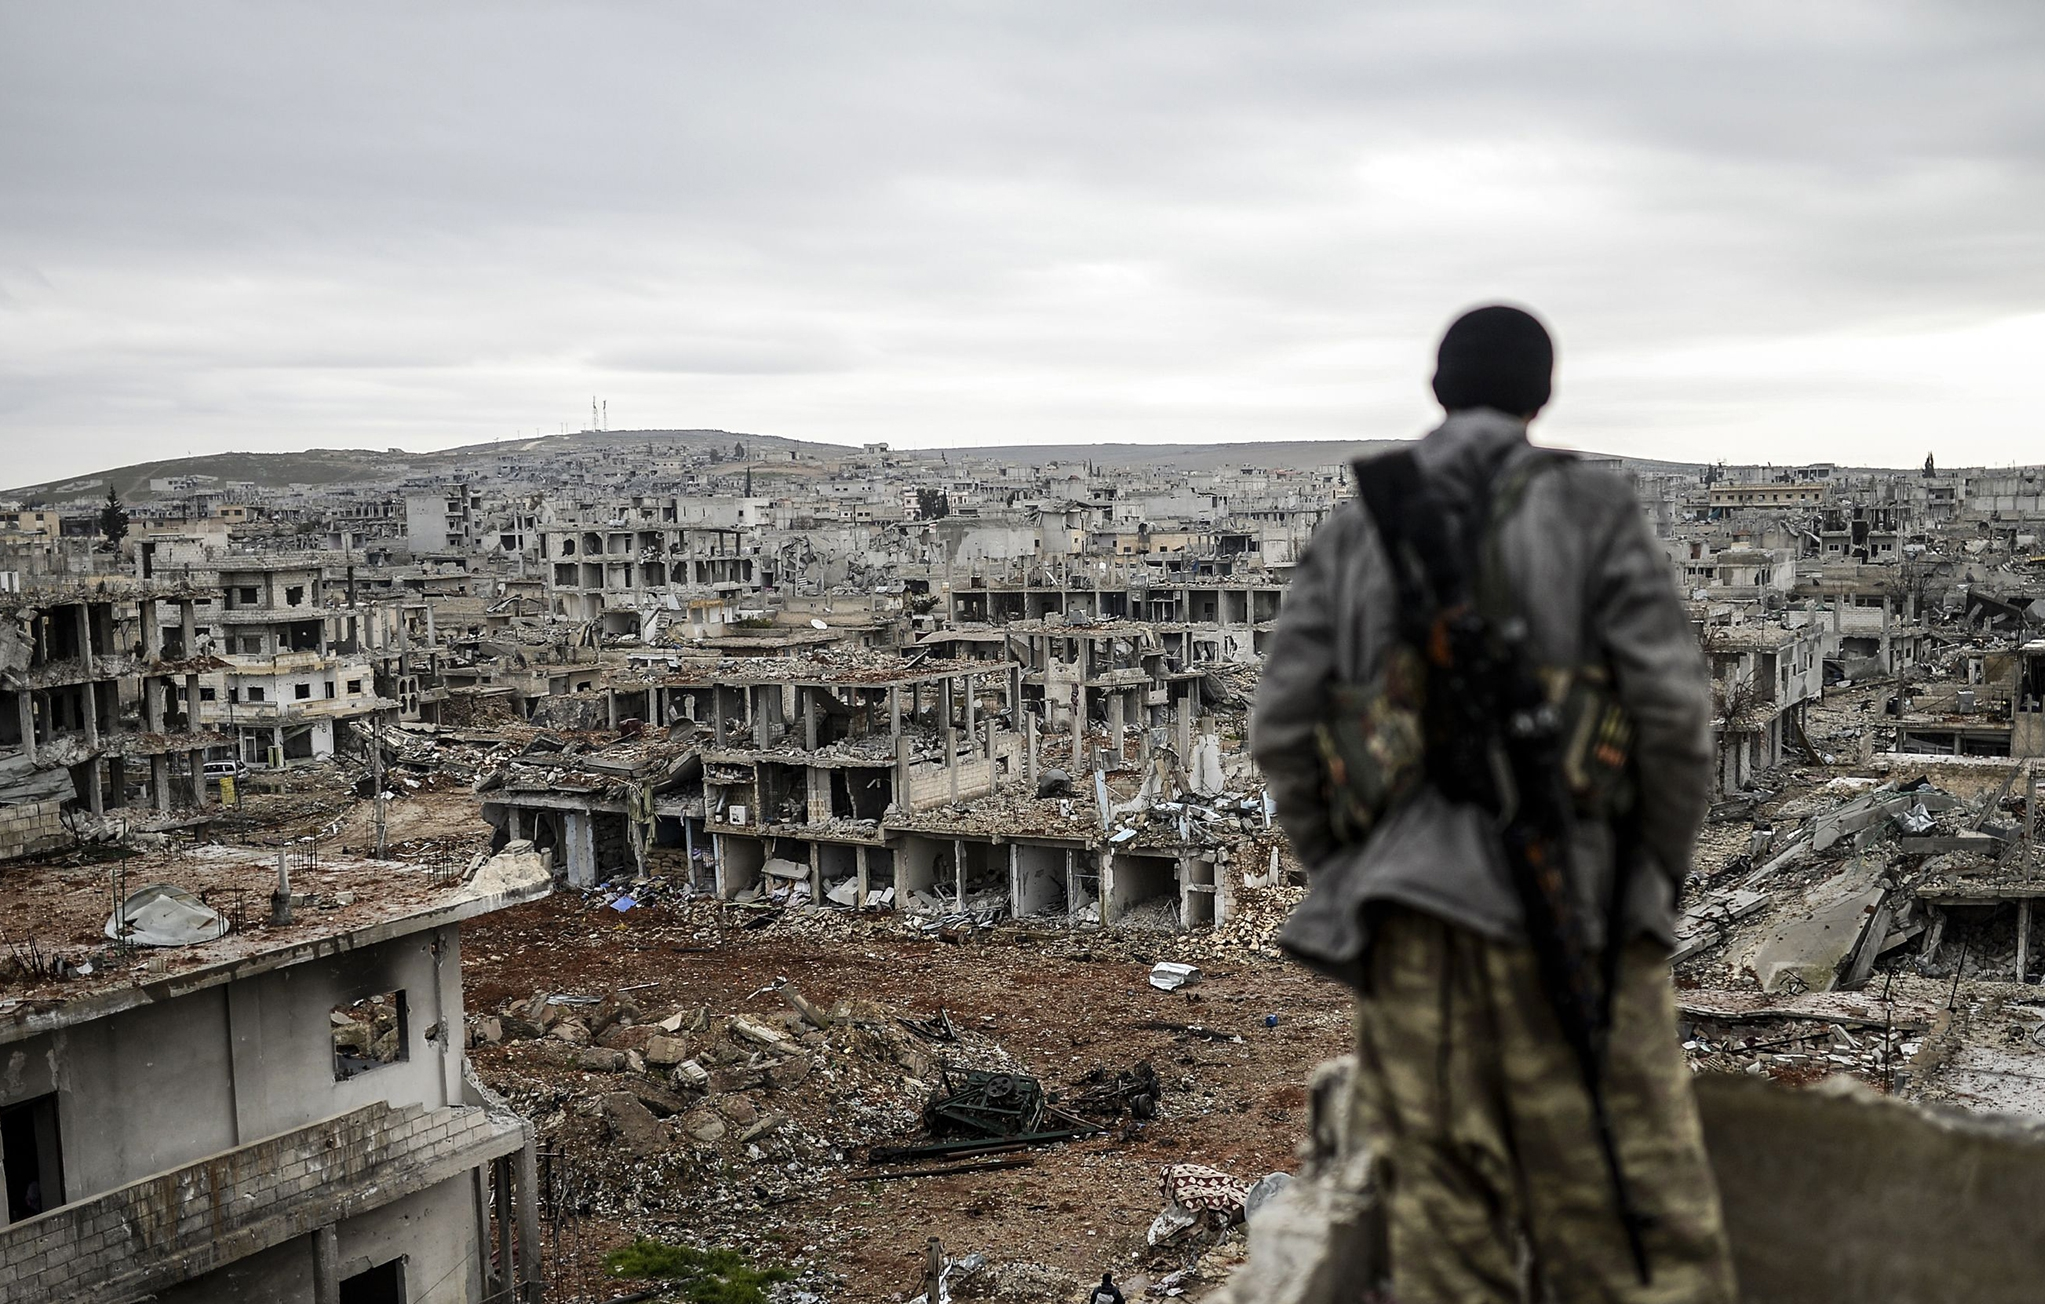 religious wars, wars and rumors of wars, military history, Syrian Civil War, War in Syria, Assad